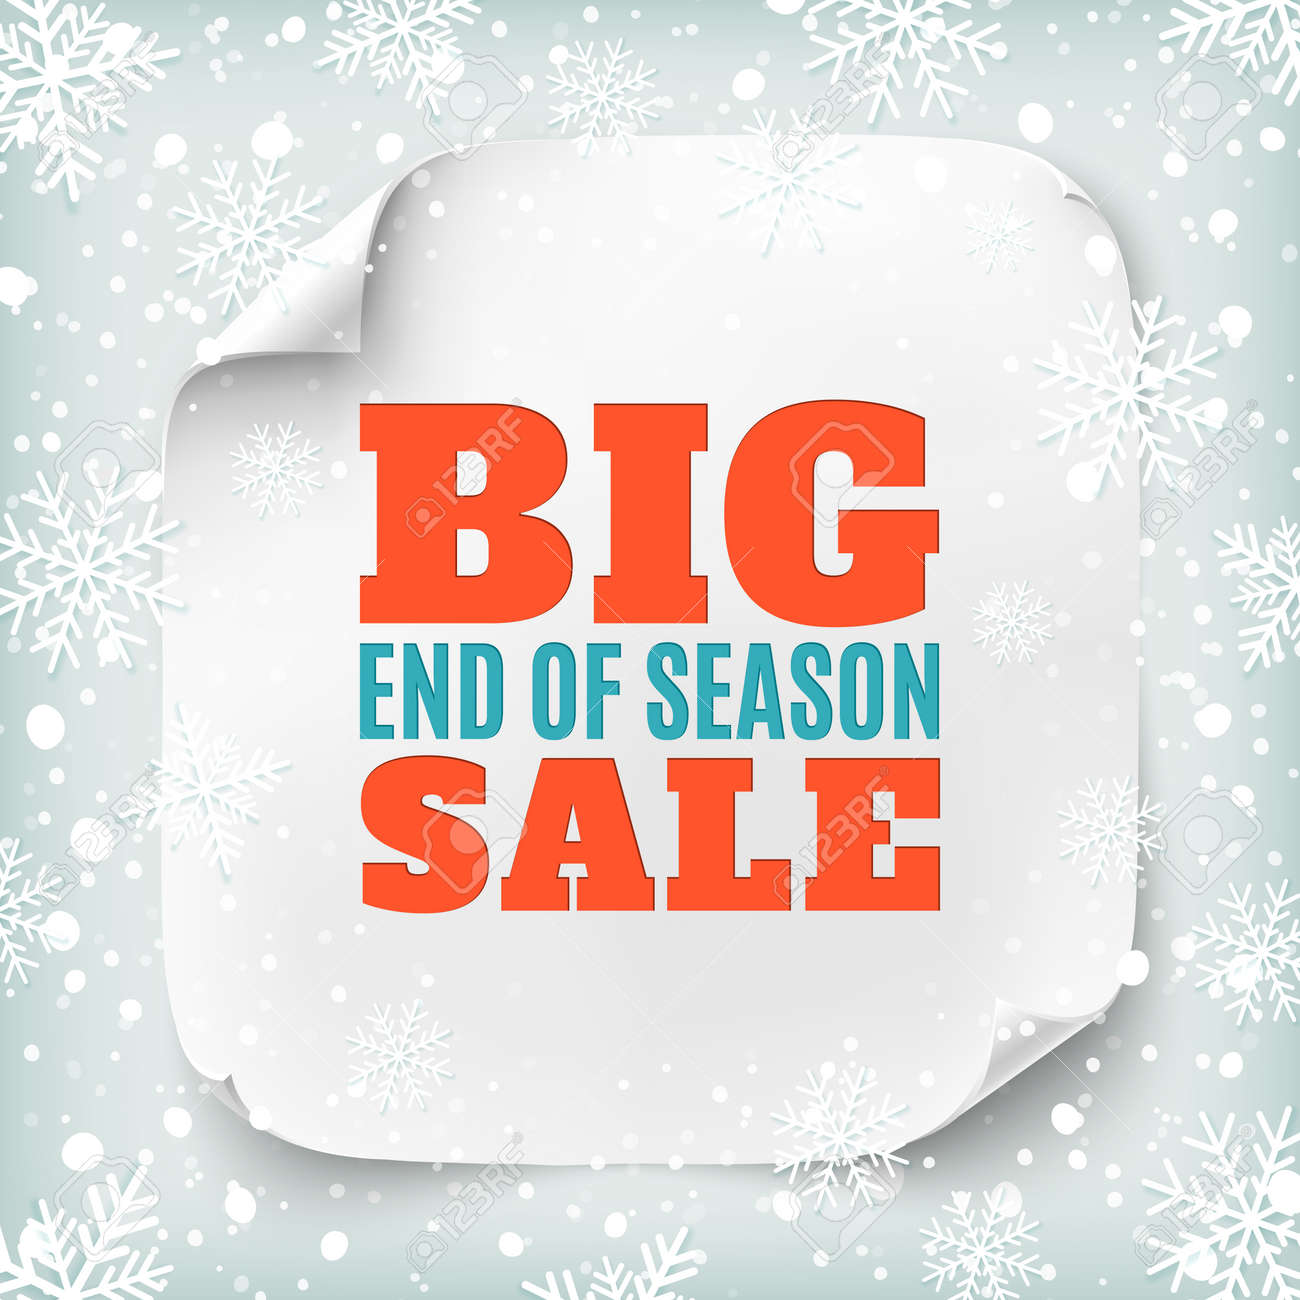 aa5428818b0 Big end of season sale poster. White square paper banner on winter  background with snow